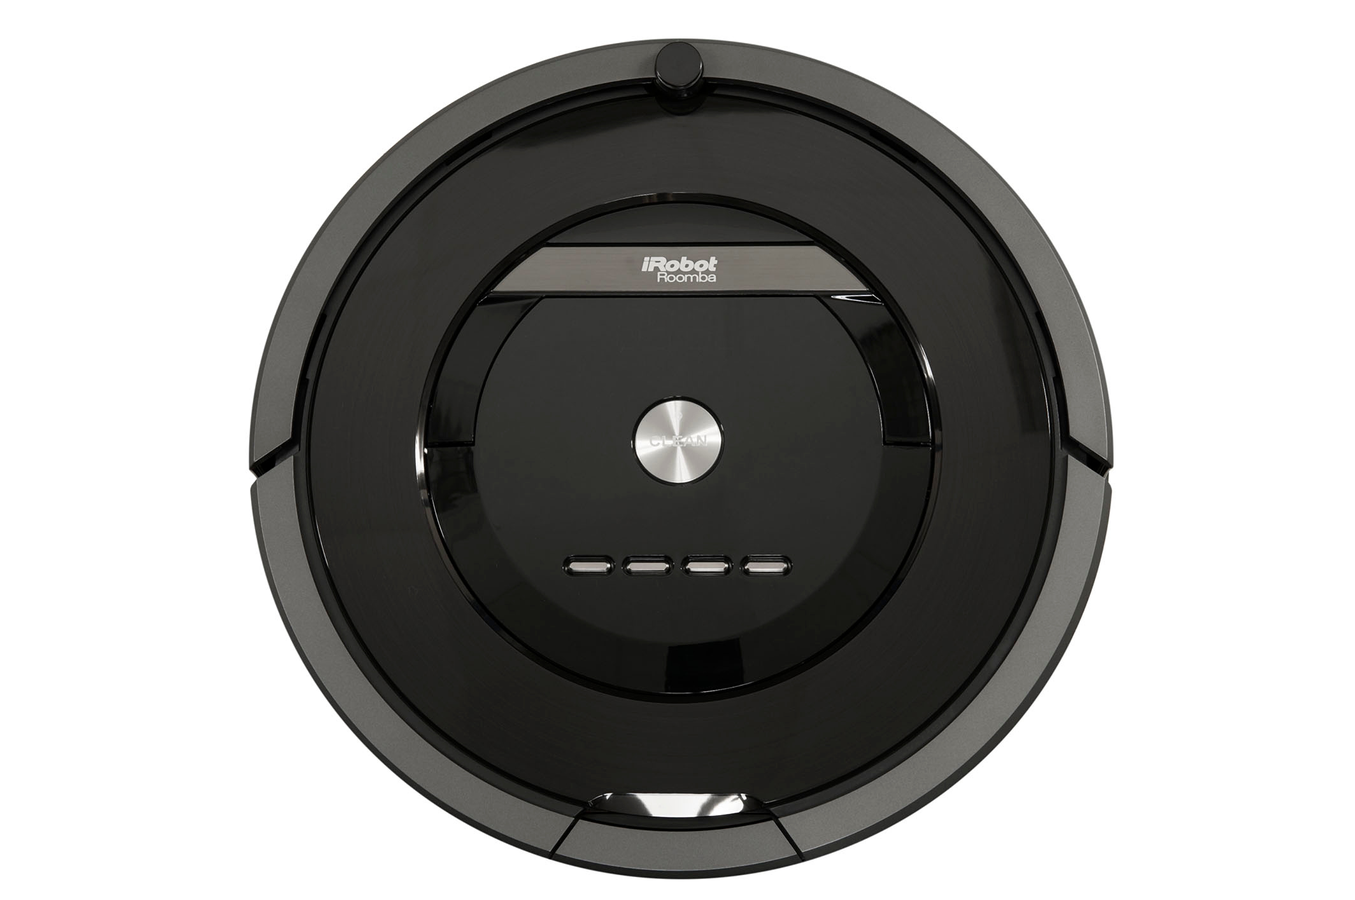 aspirateur robot irobot roomba 880 4000137 darty. Black Bedroom Furniture Sets. Home Design Ideas